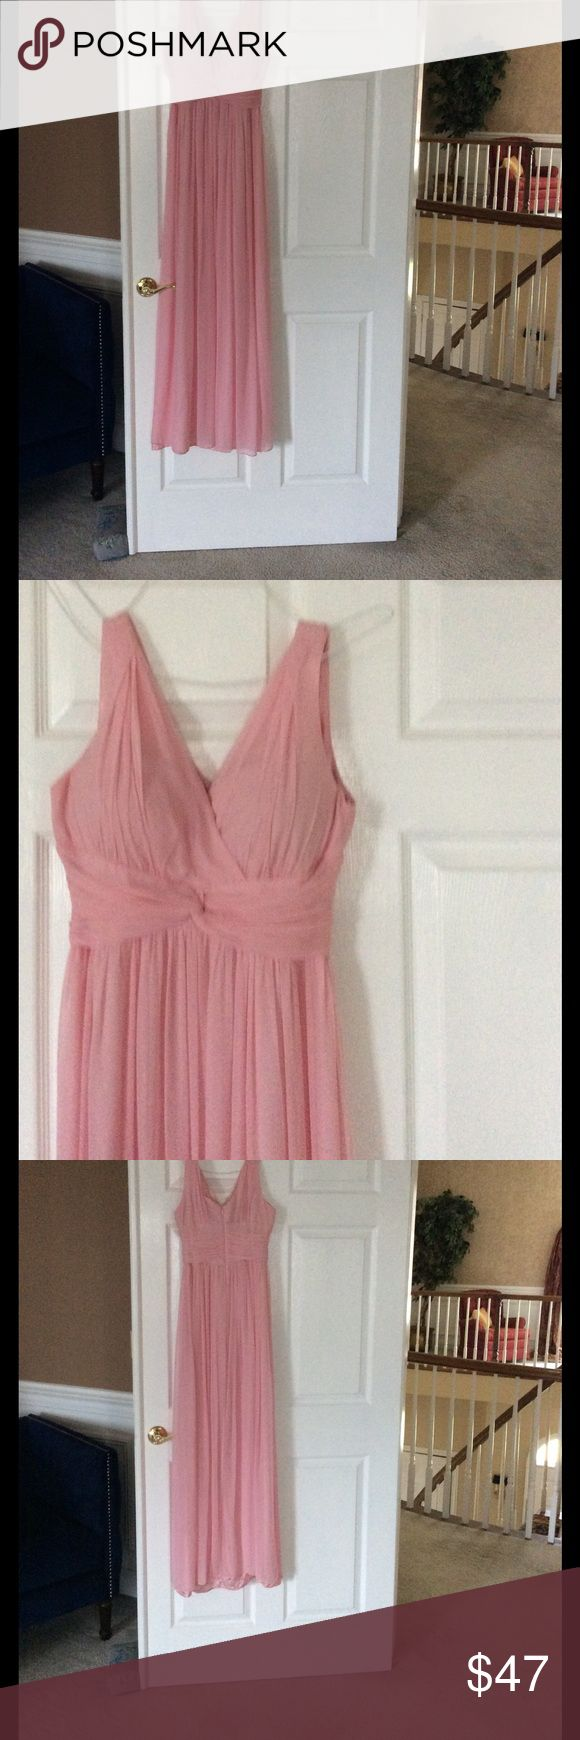 Donna Morgan pink long dress size 0 Donna Morgan pale pink long dress size 0 the hem can just be cut to size only worn once paid 300 selling cheap tiny hole on bottom back can easily be sewn or glued Donna Morgan Dresses Maxi